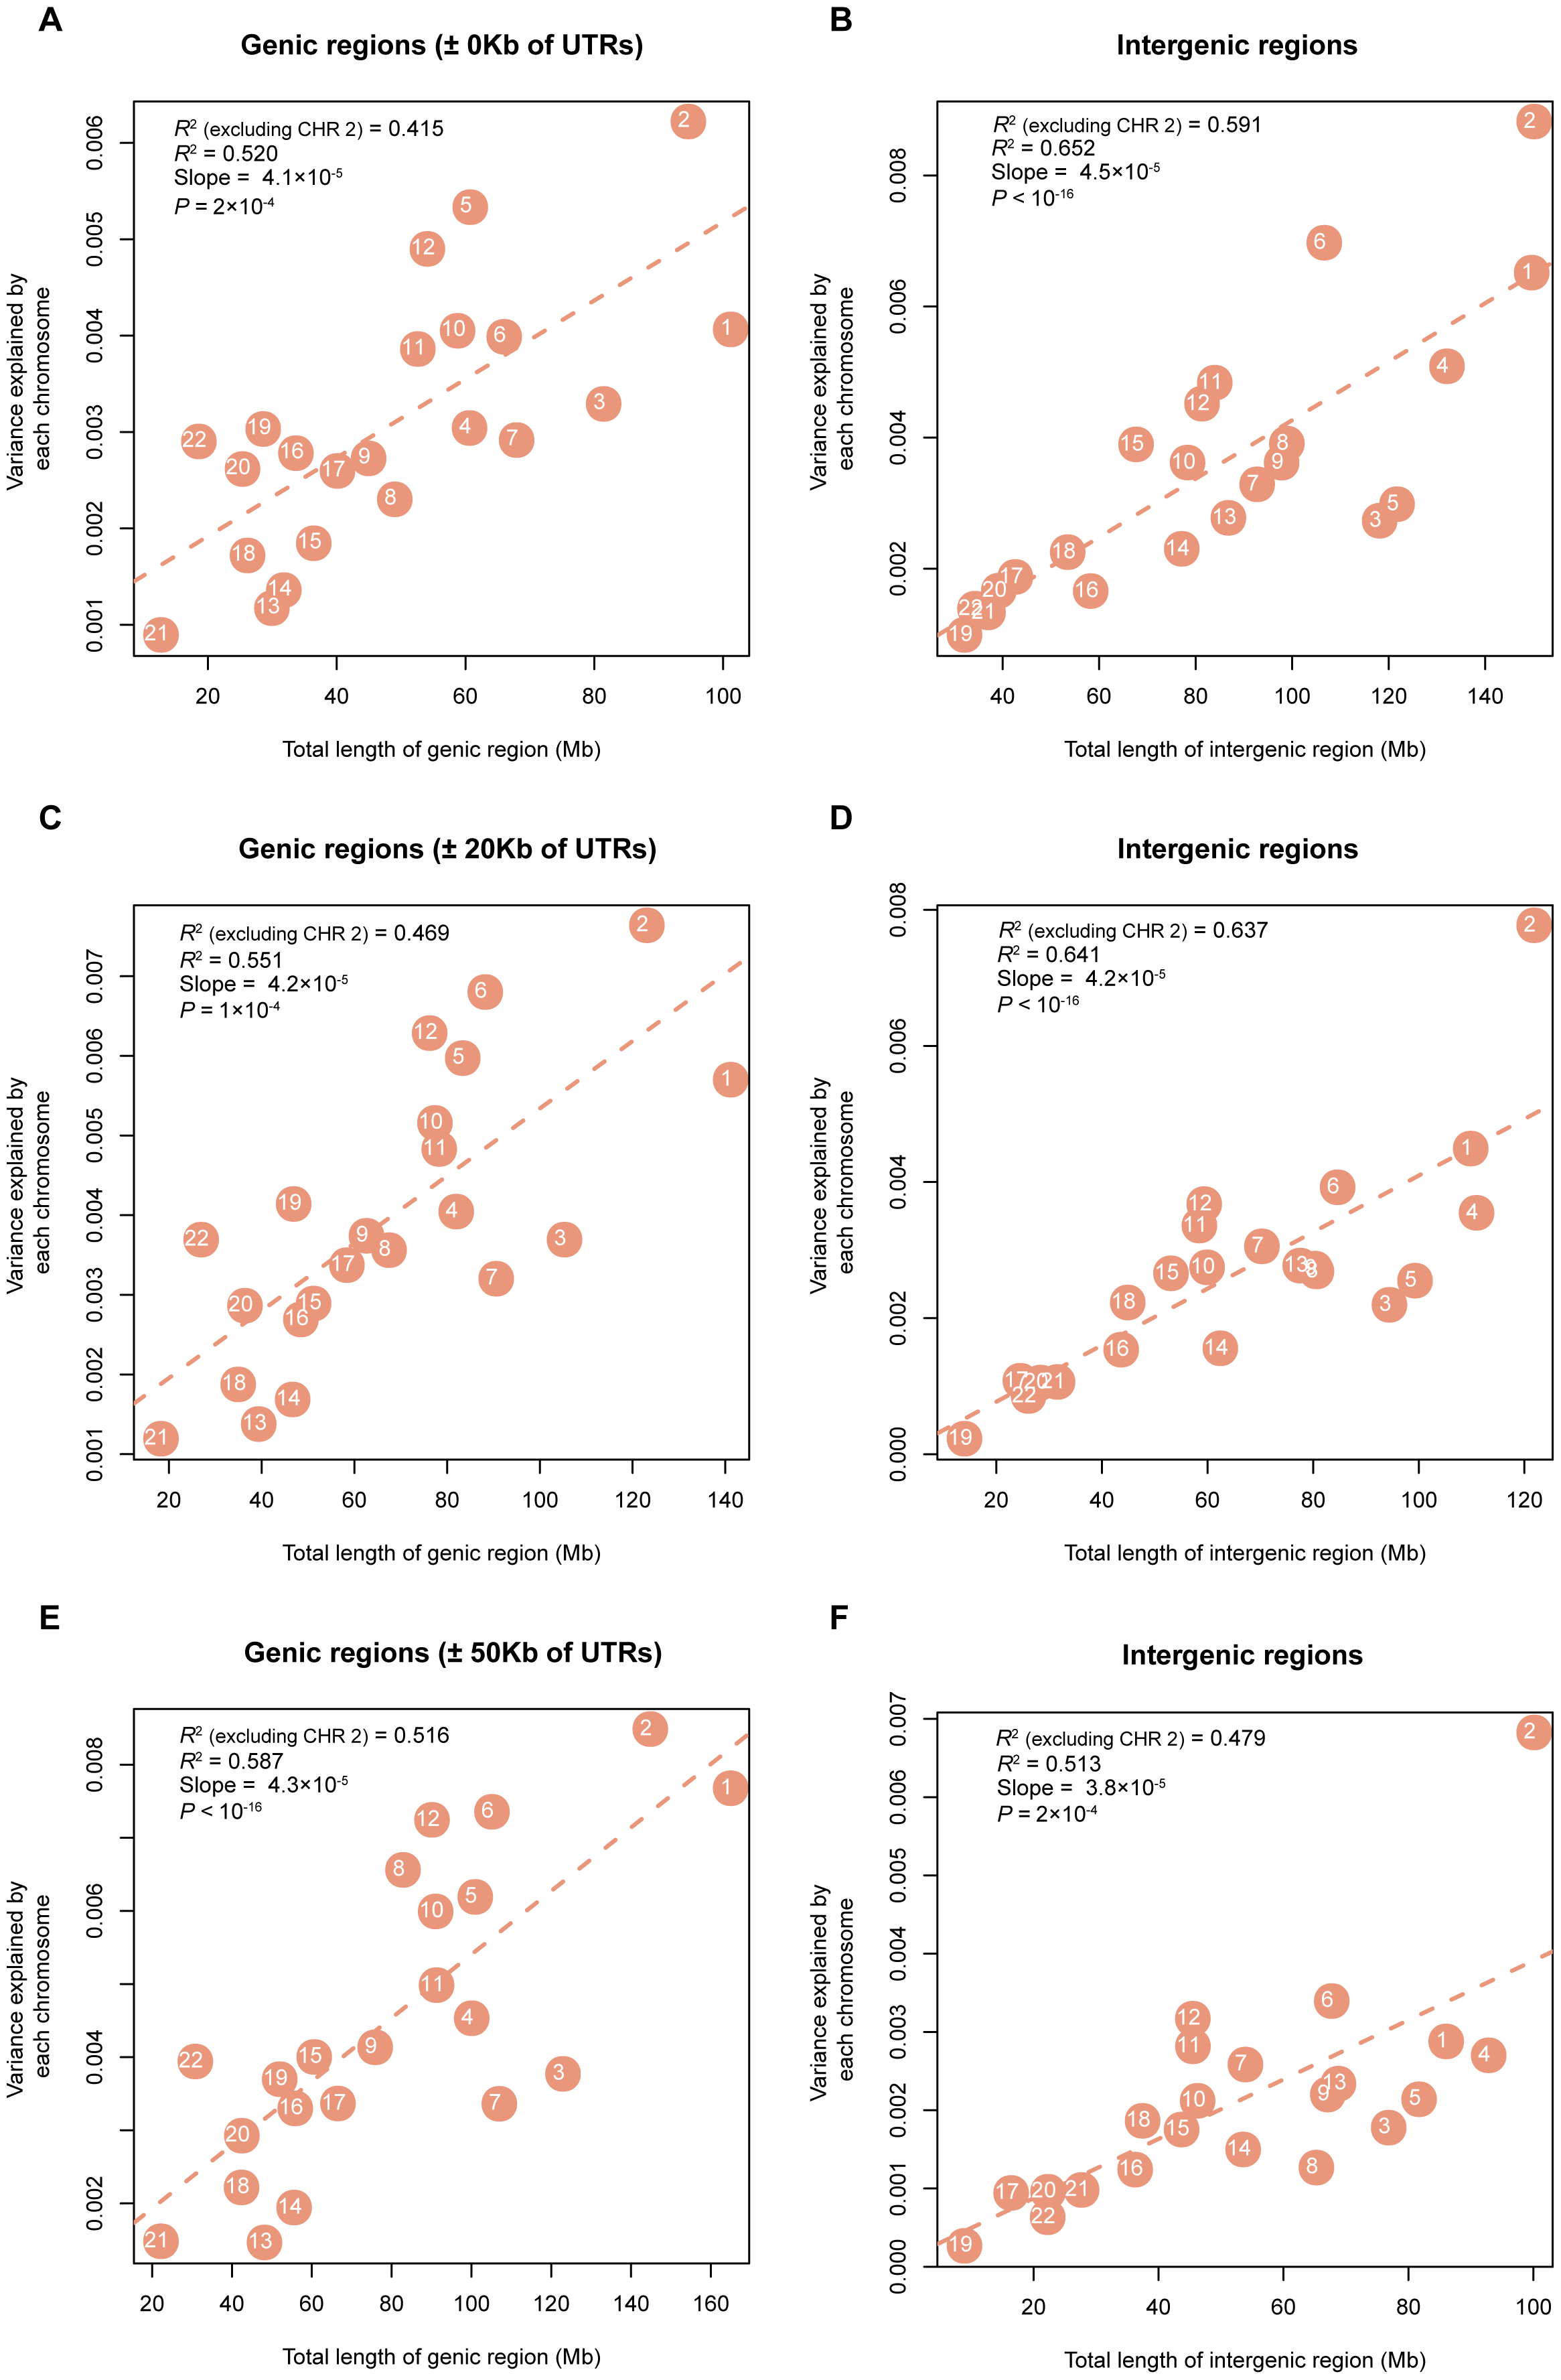 Estimates of the variance explained by all SNPs in genic (intergenic) regions averaged across 47 traits (all traits except INS0 and HOMA) against length of genic (intergenic) DNA.